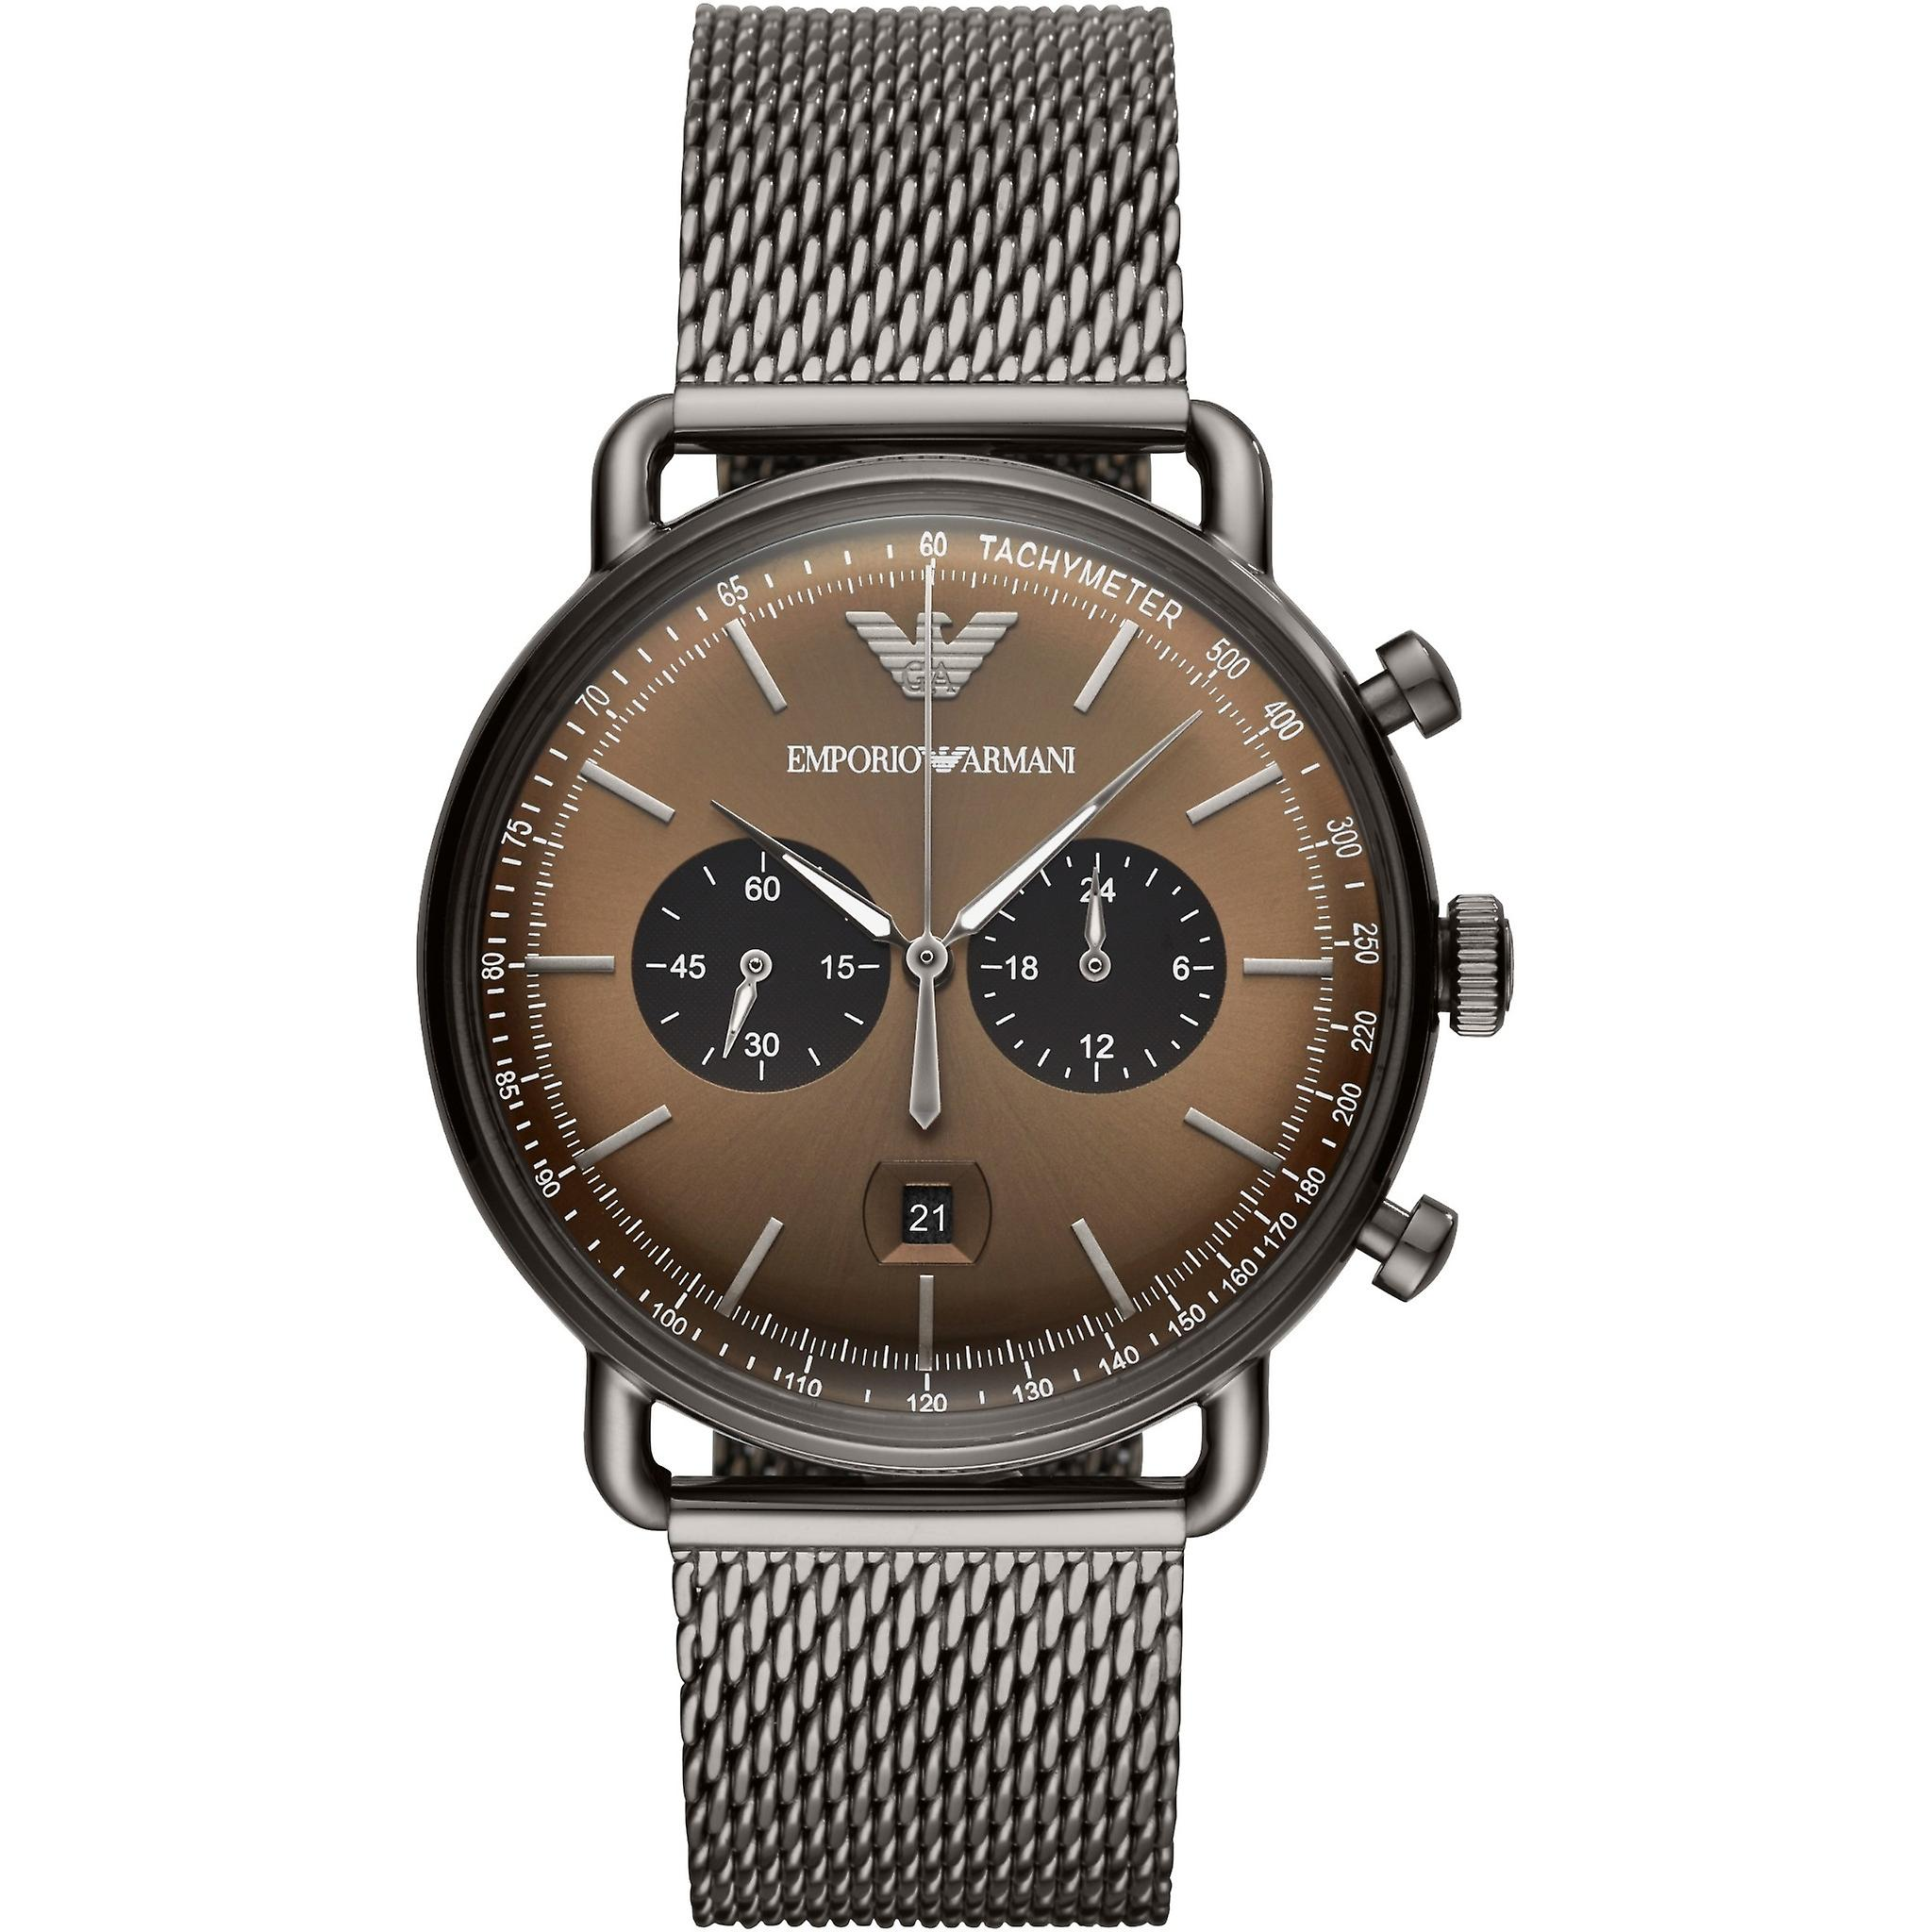 Emporio Armani Ar11141 Brown Dial Stainless Steel Men's Watch